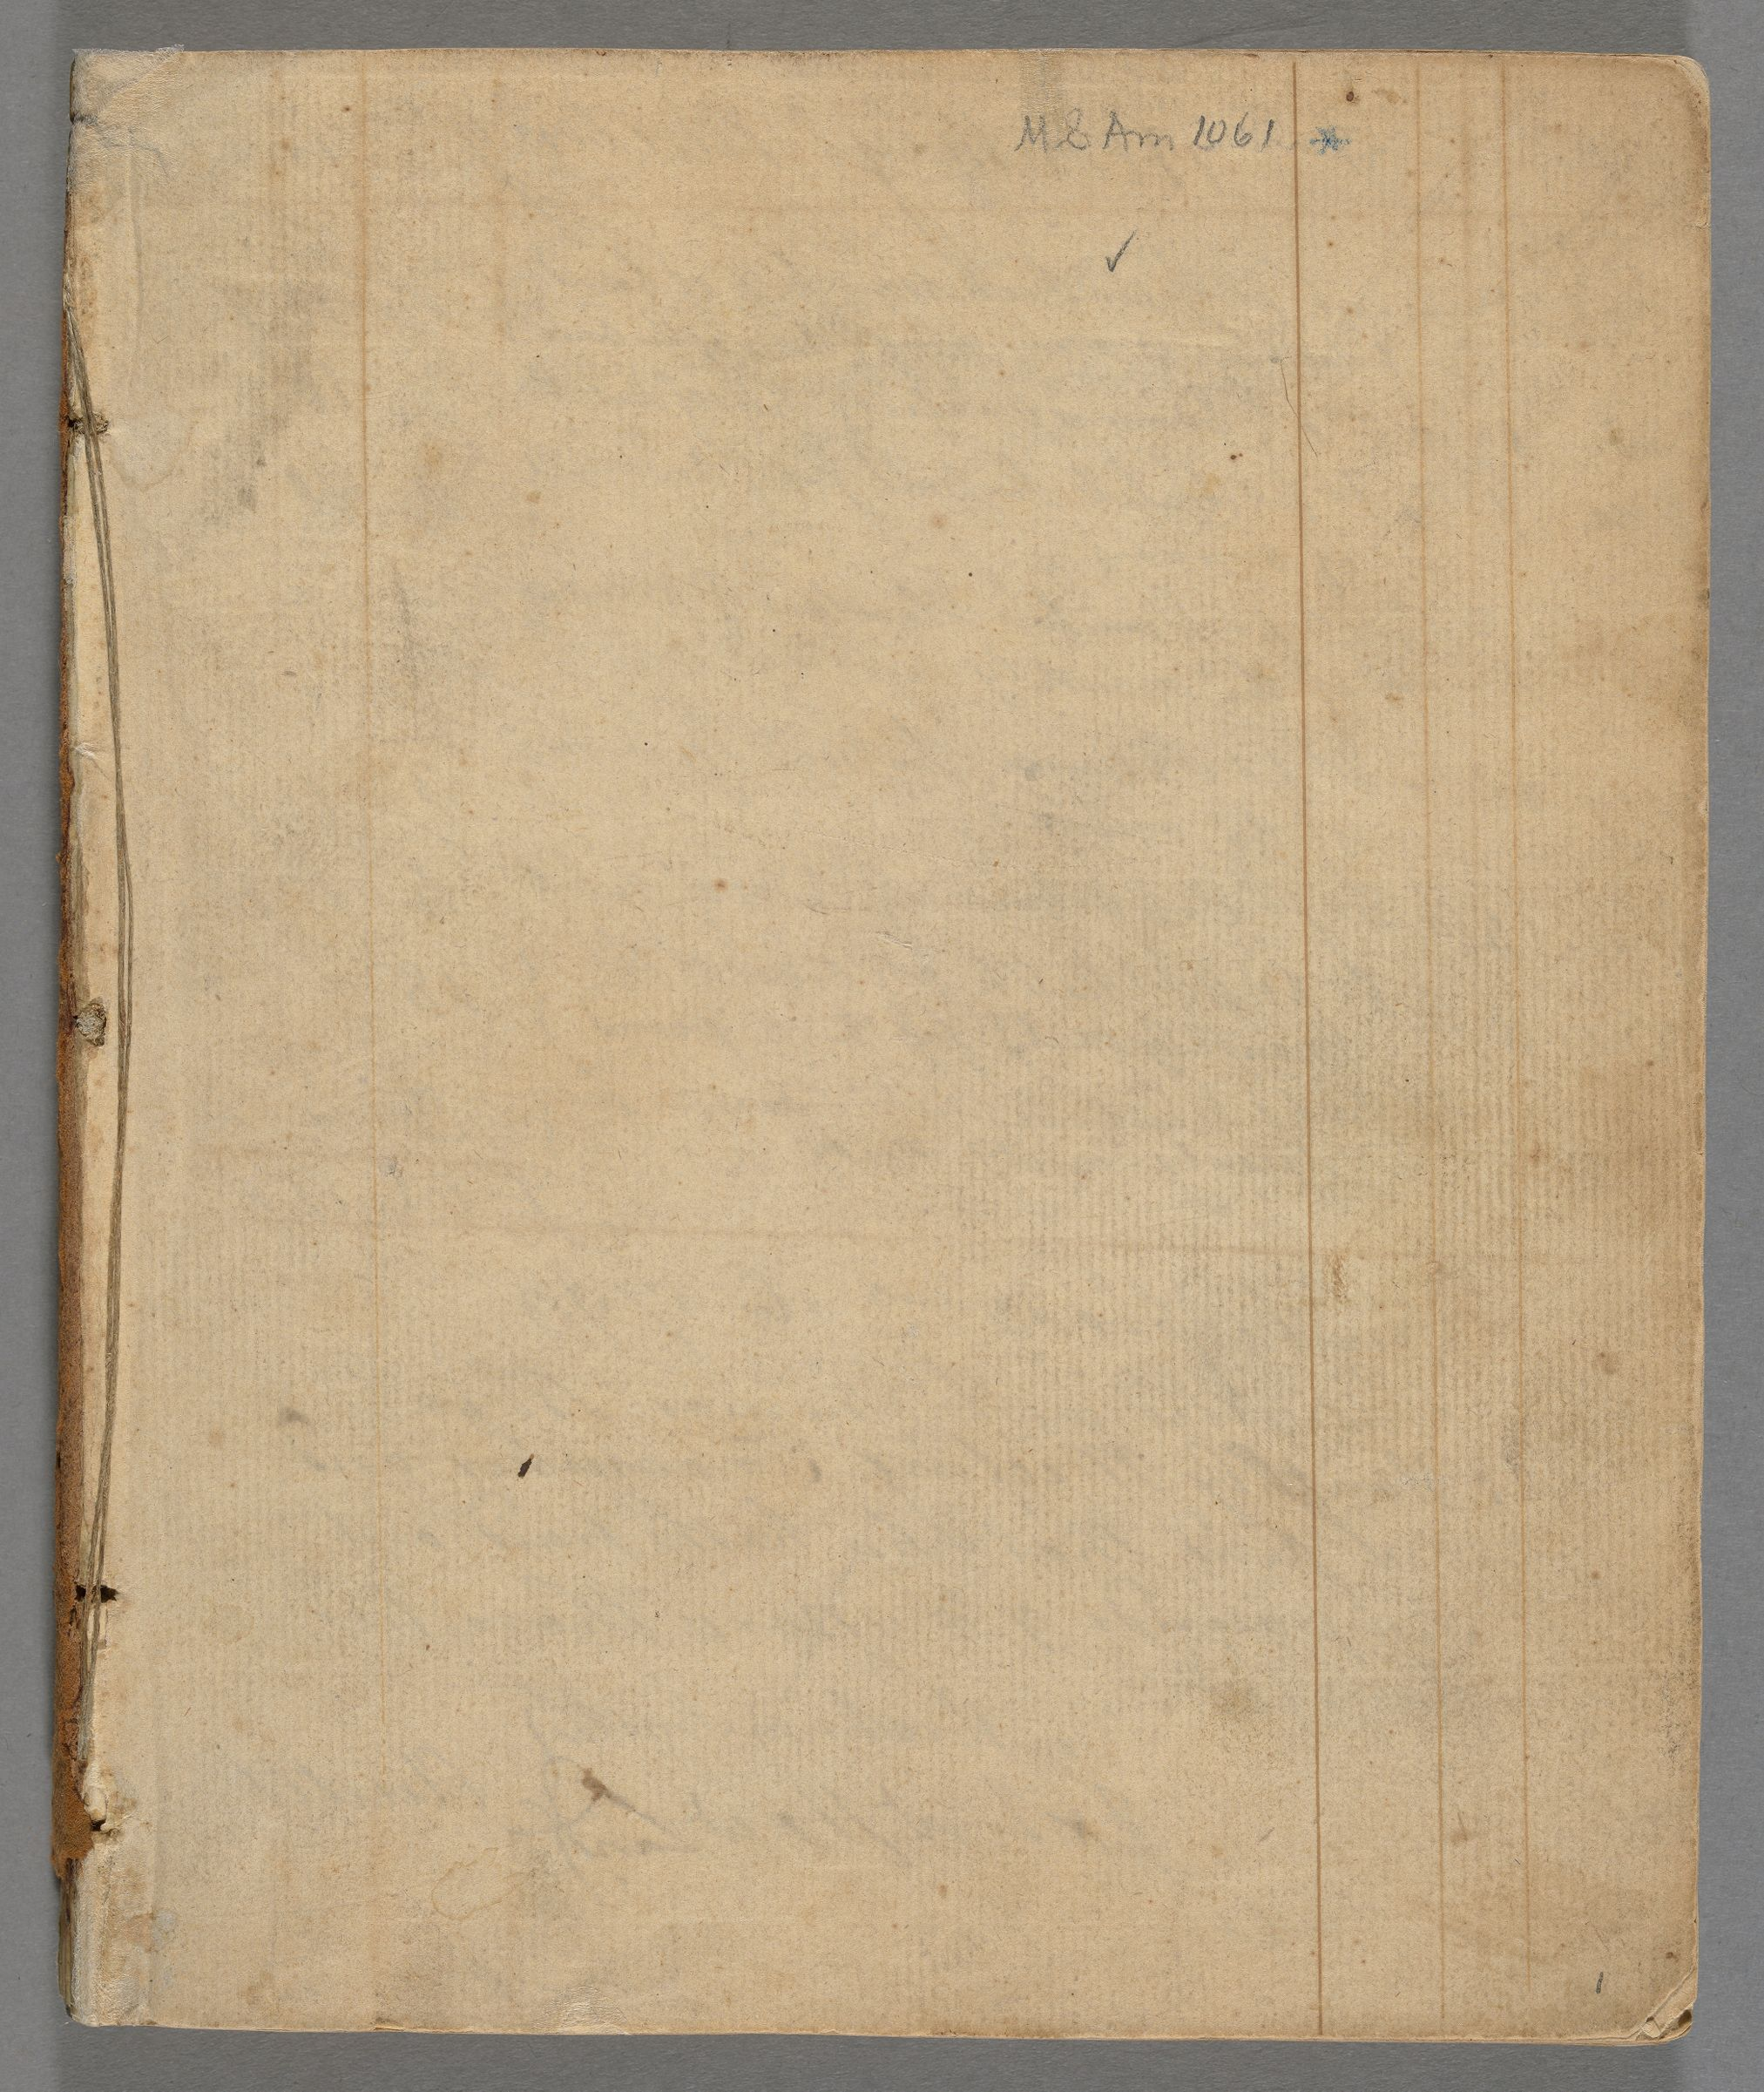 Account book : manuscript, 1793-1869